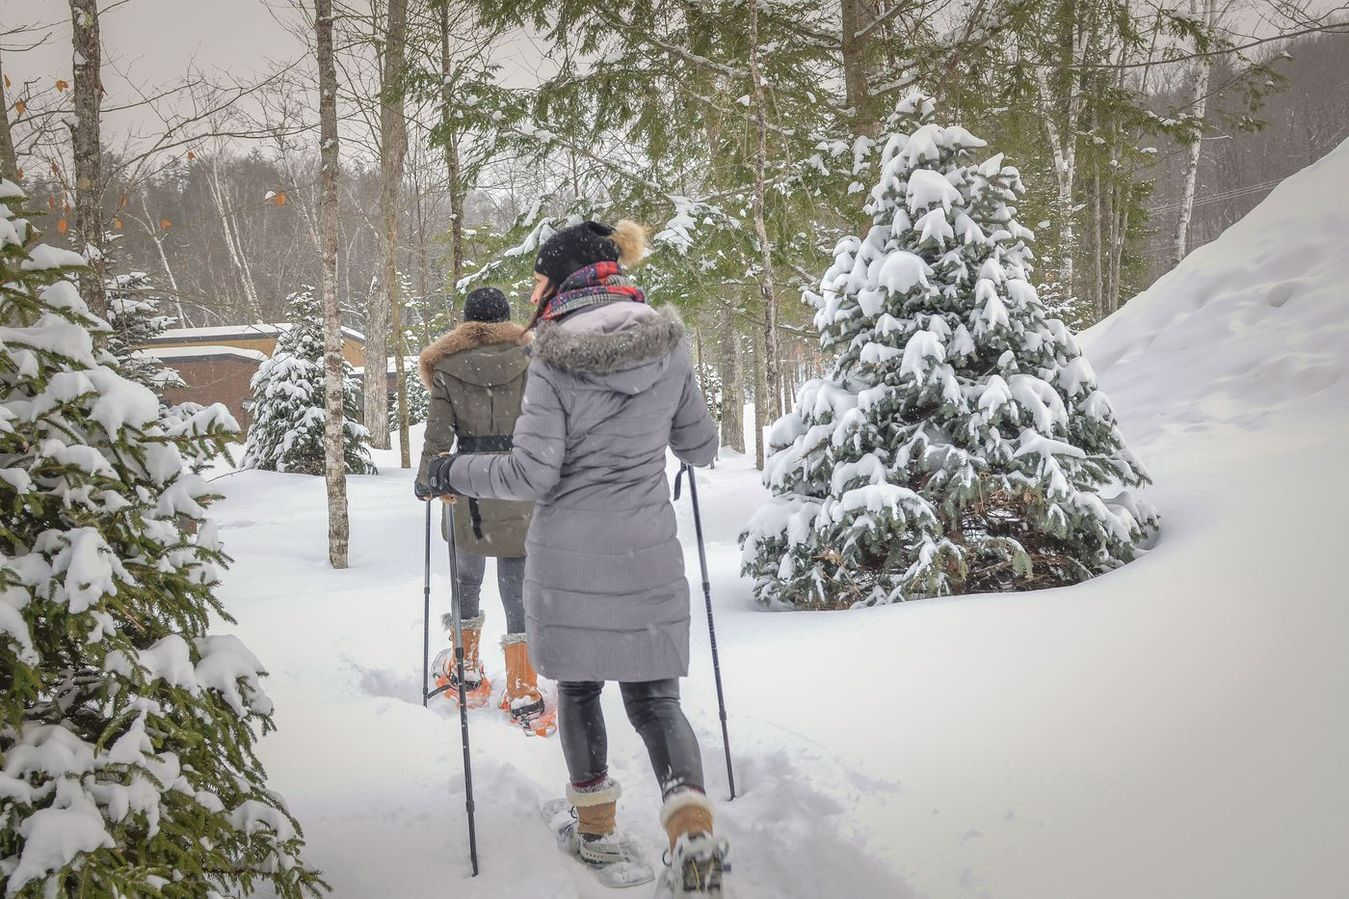 Snowshoeing Mont Tremblant, Bel Air Tremblant hotel